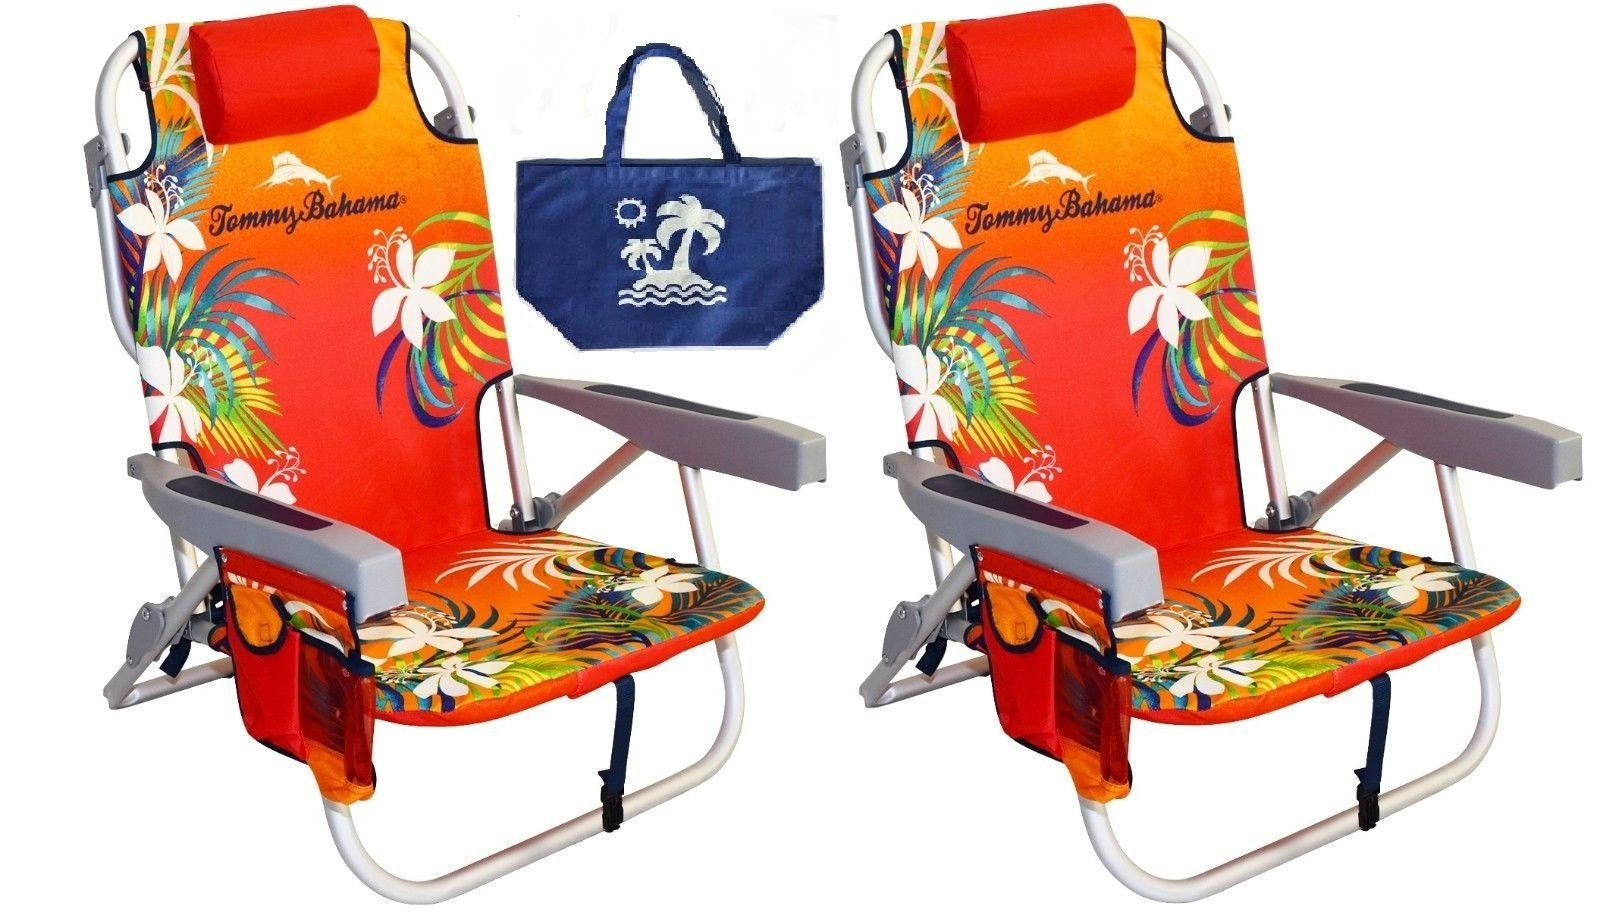 2 Tommy Bahama Backpack Beach Chairs/ Red + 1 Medium Tote Bag by Tommy Bahama (Image #1)